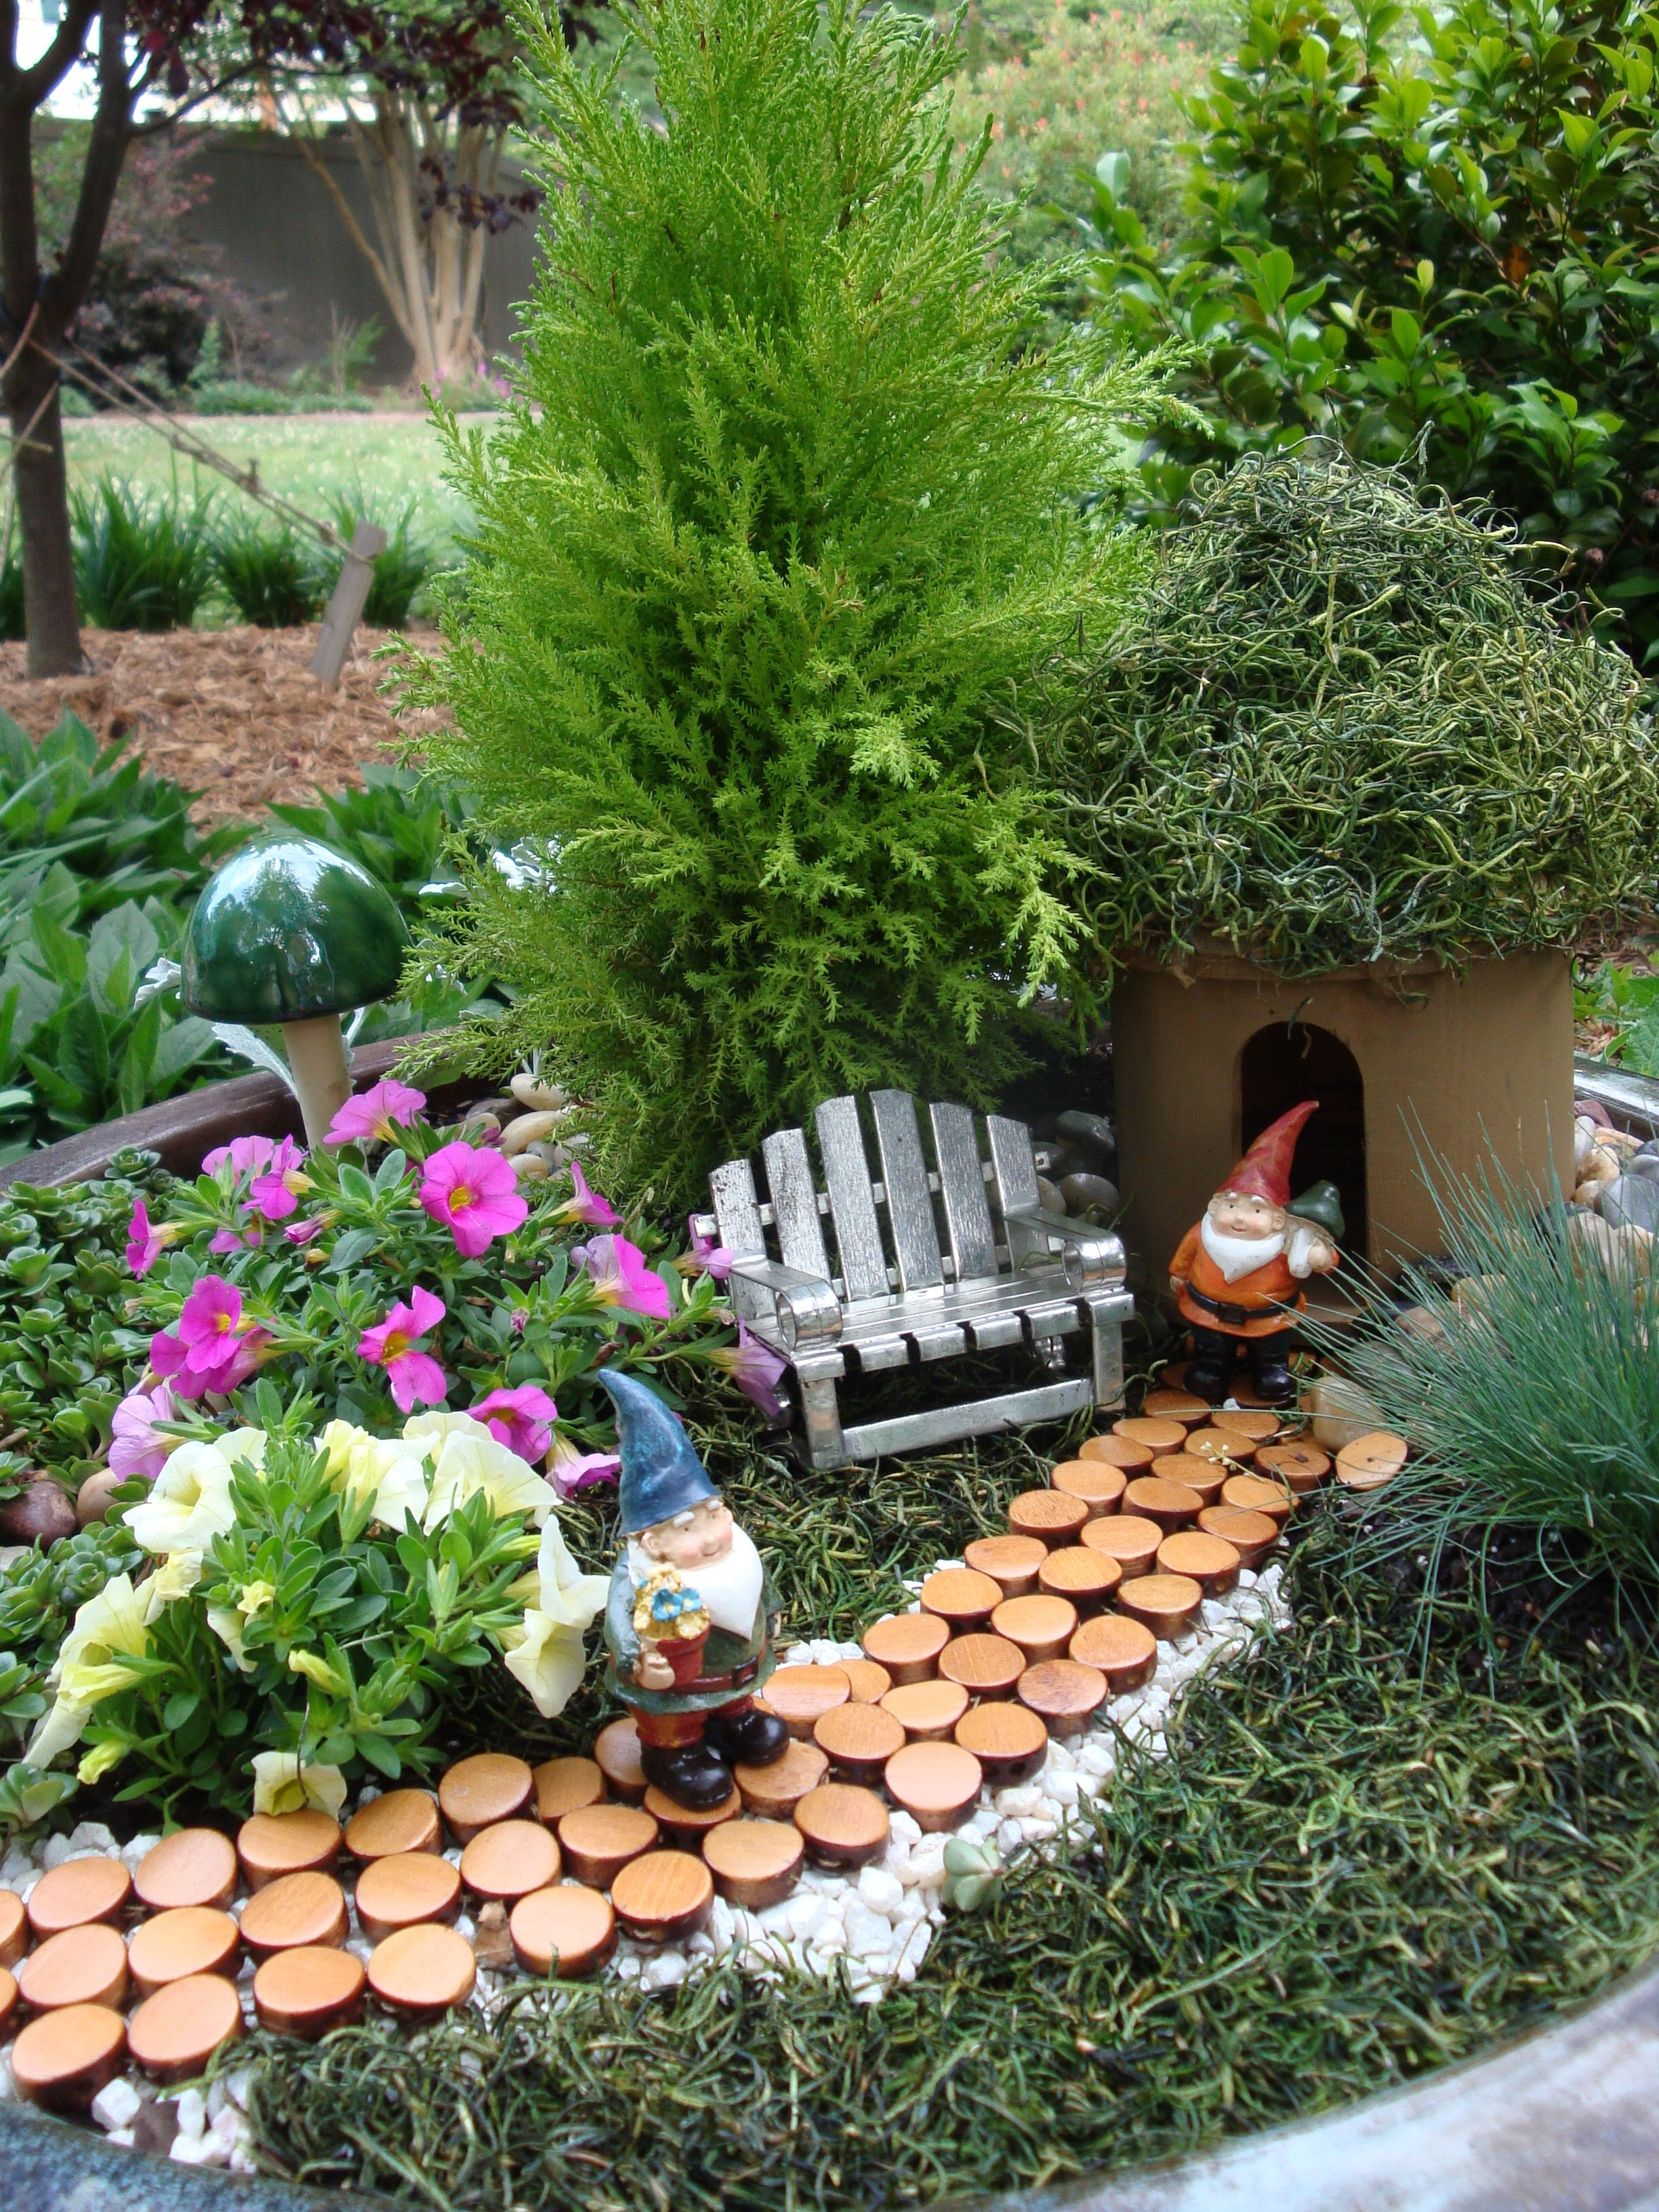 Gnome In Garden: Think Miniature Landscape Around The Gnomes Rather Than